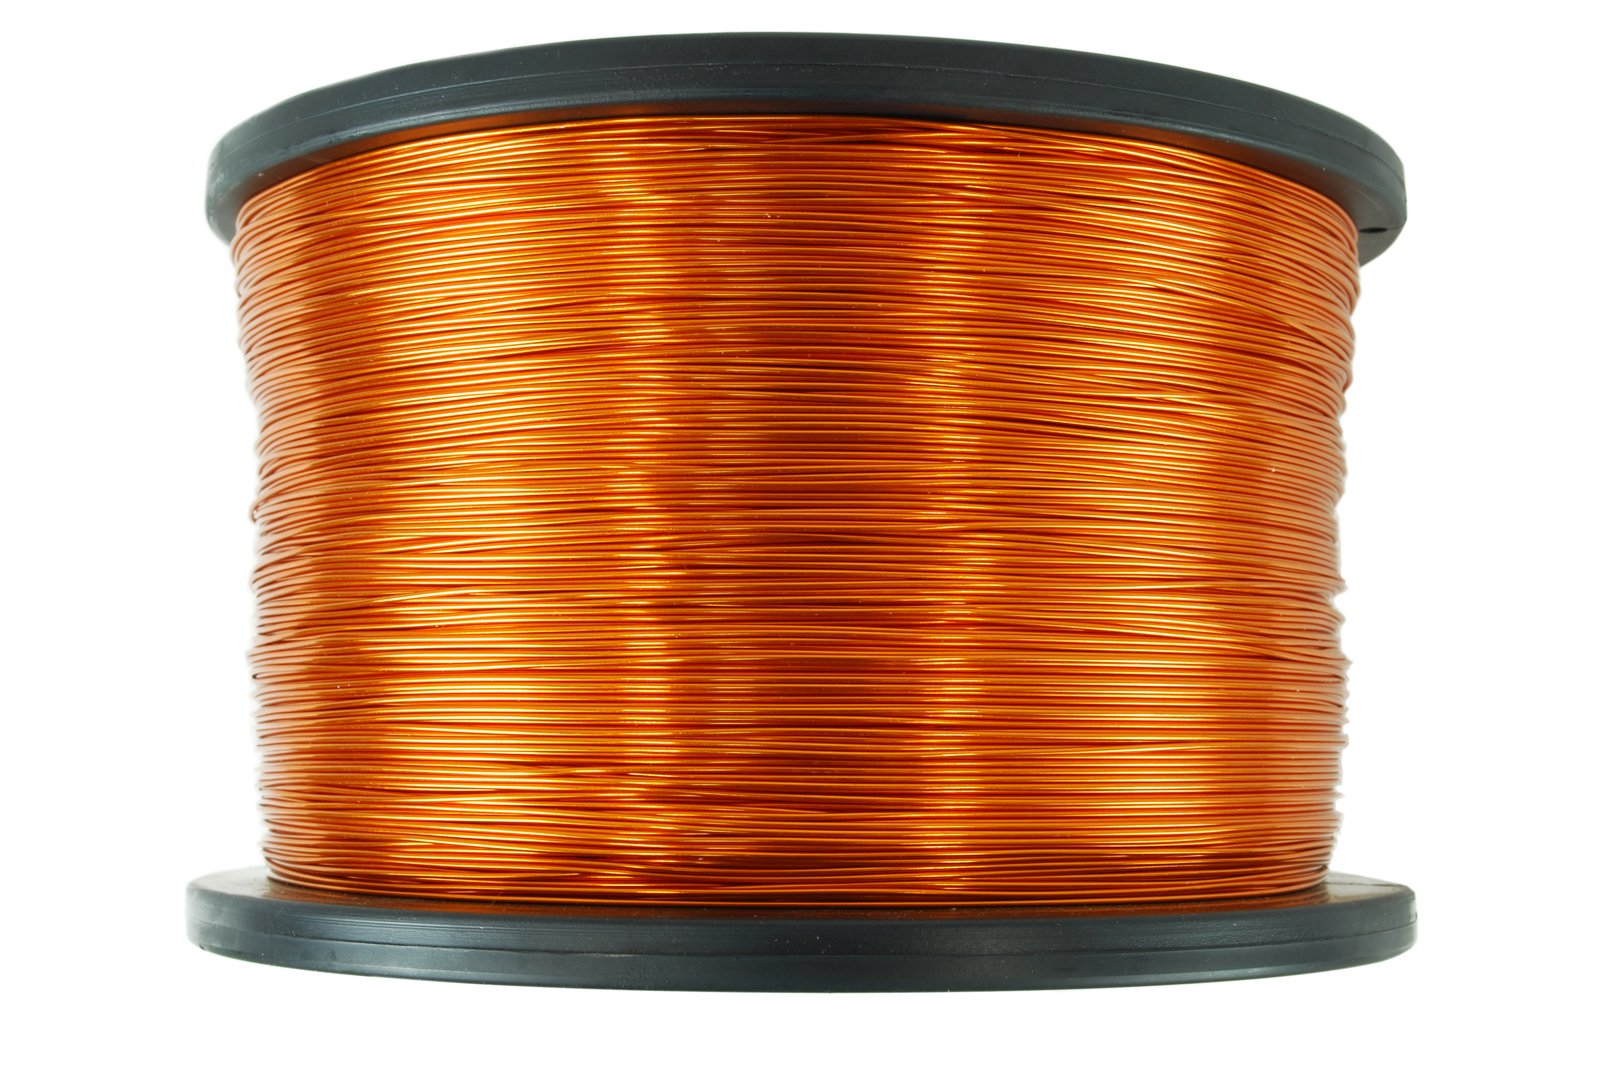 TEMCo 32 AWG Copper Magnet Wire - 5 lb 24440 ft